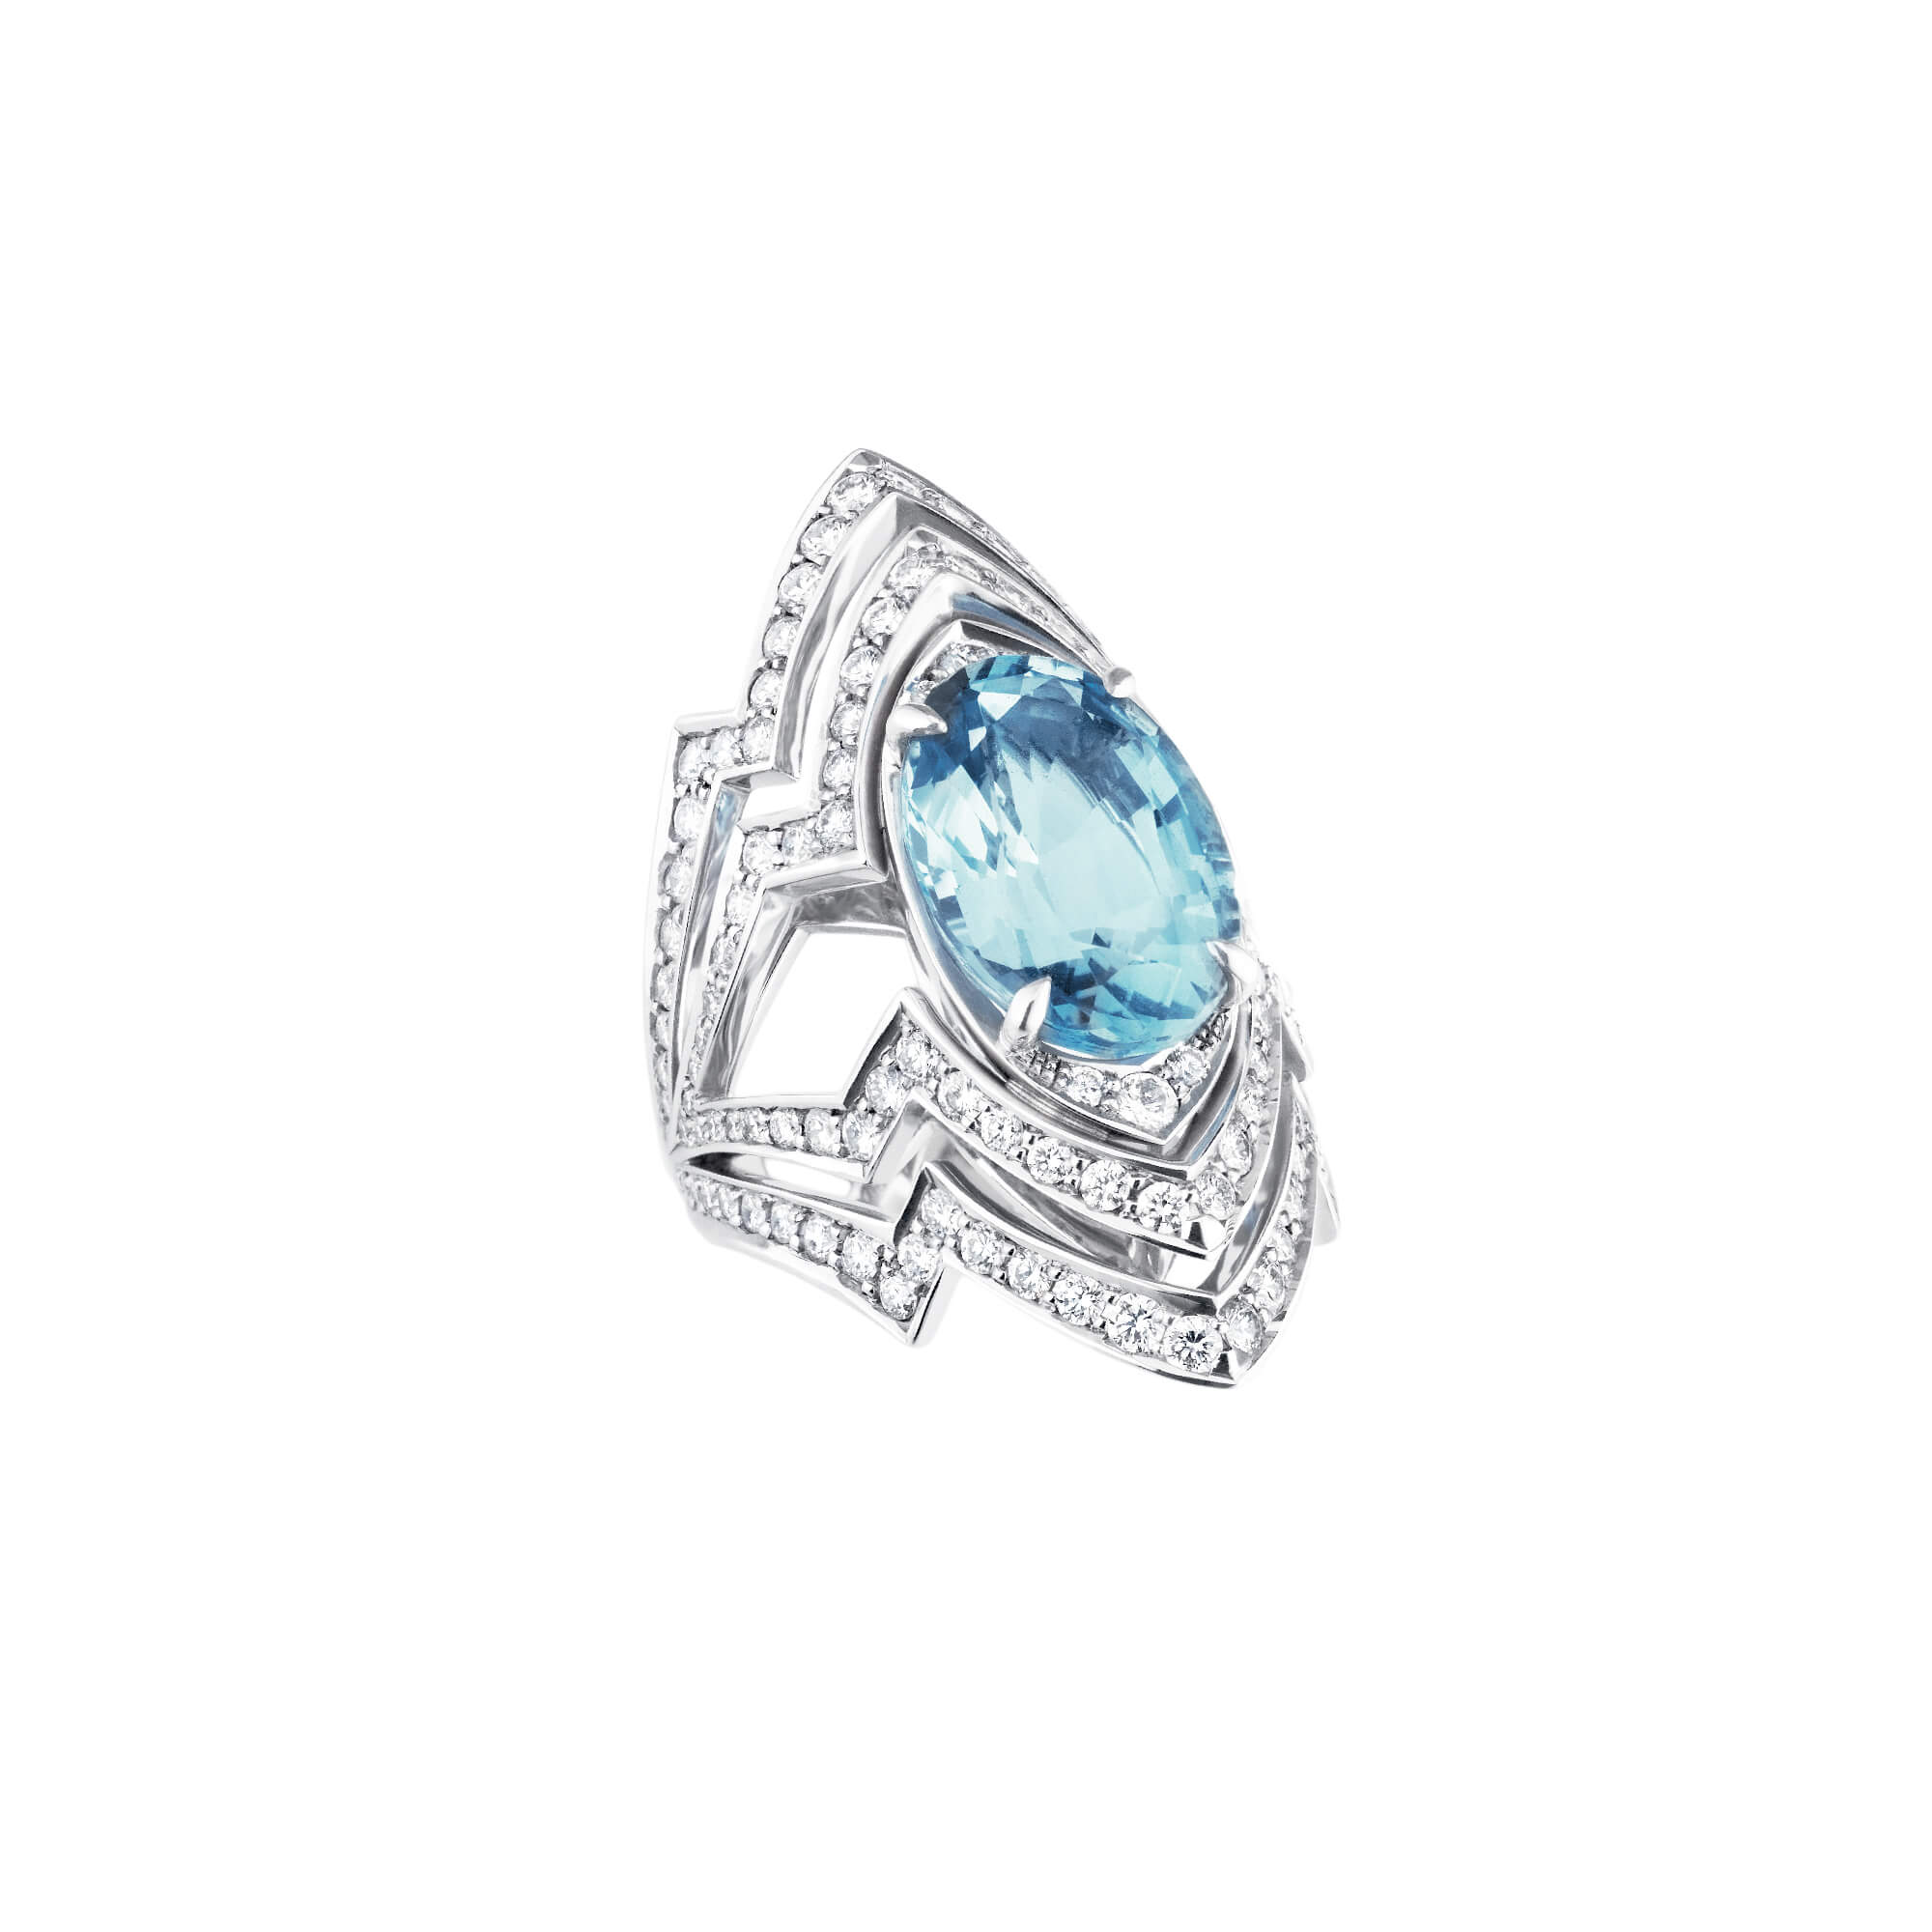 Aquamarine Couture 18ct White Gold Ring | Lady Stardust